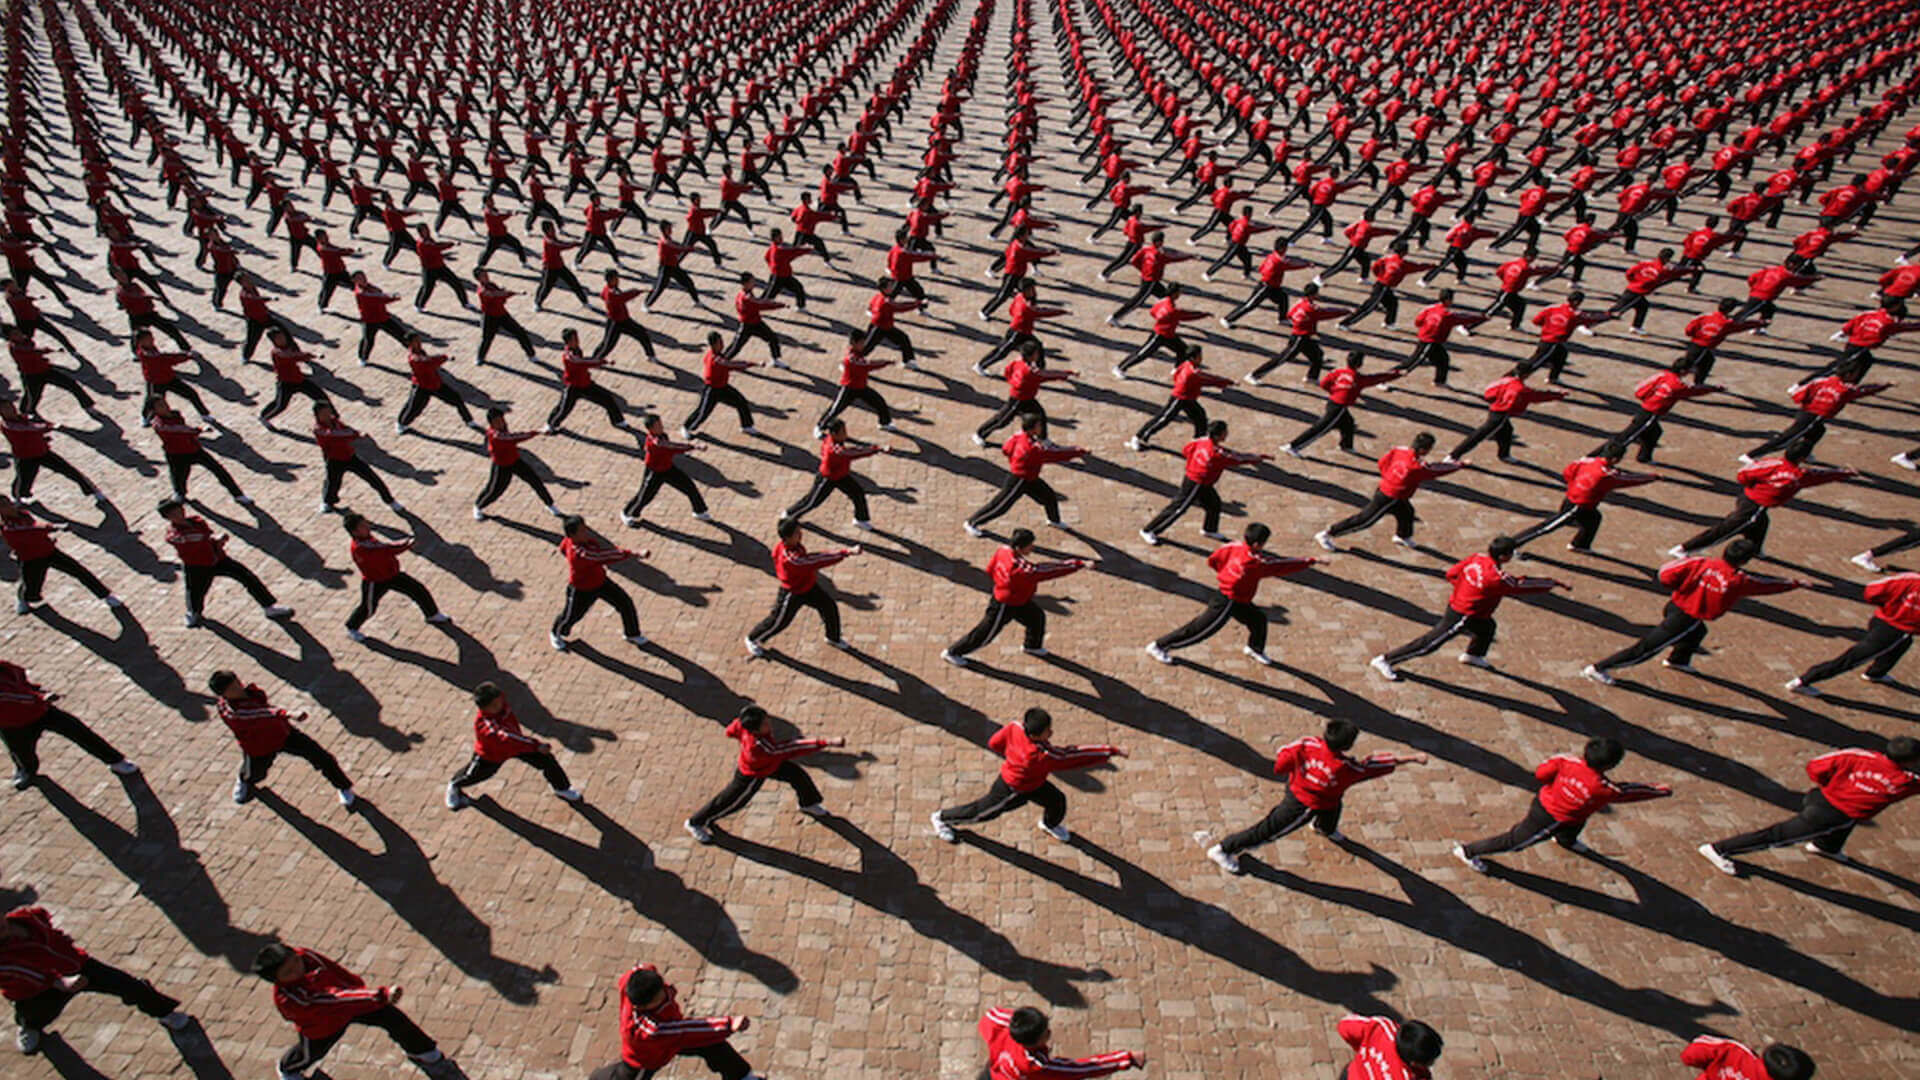 Hundreds of martial artists in red shirts, a still from the movie Samsara.